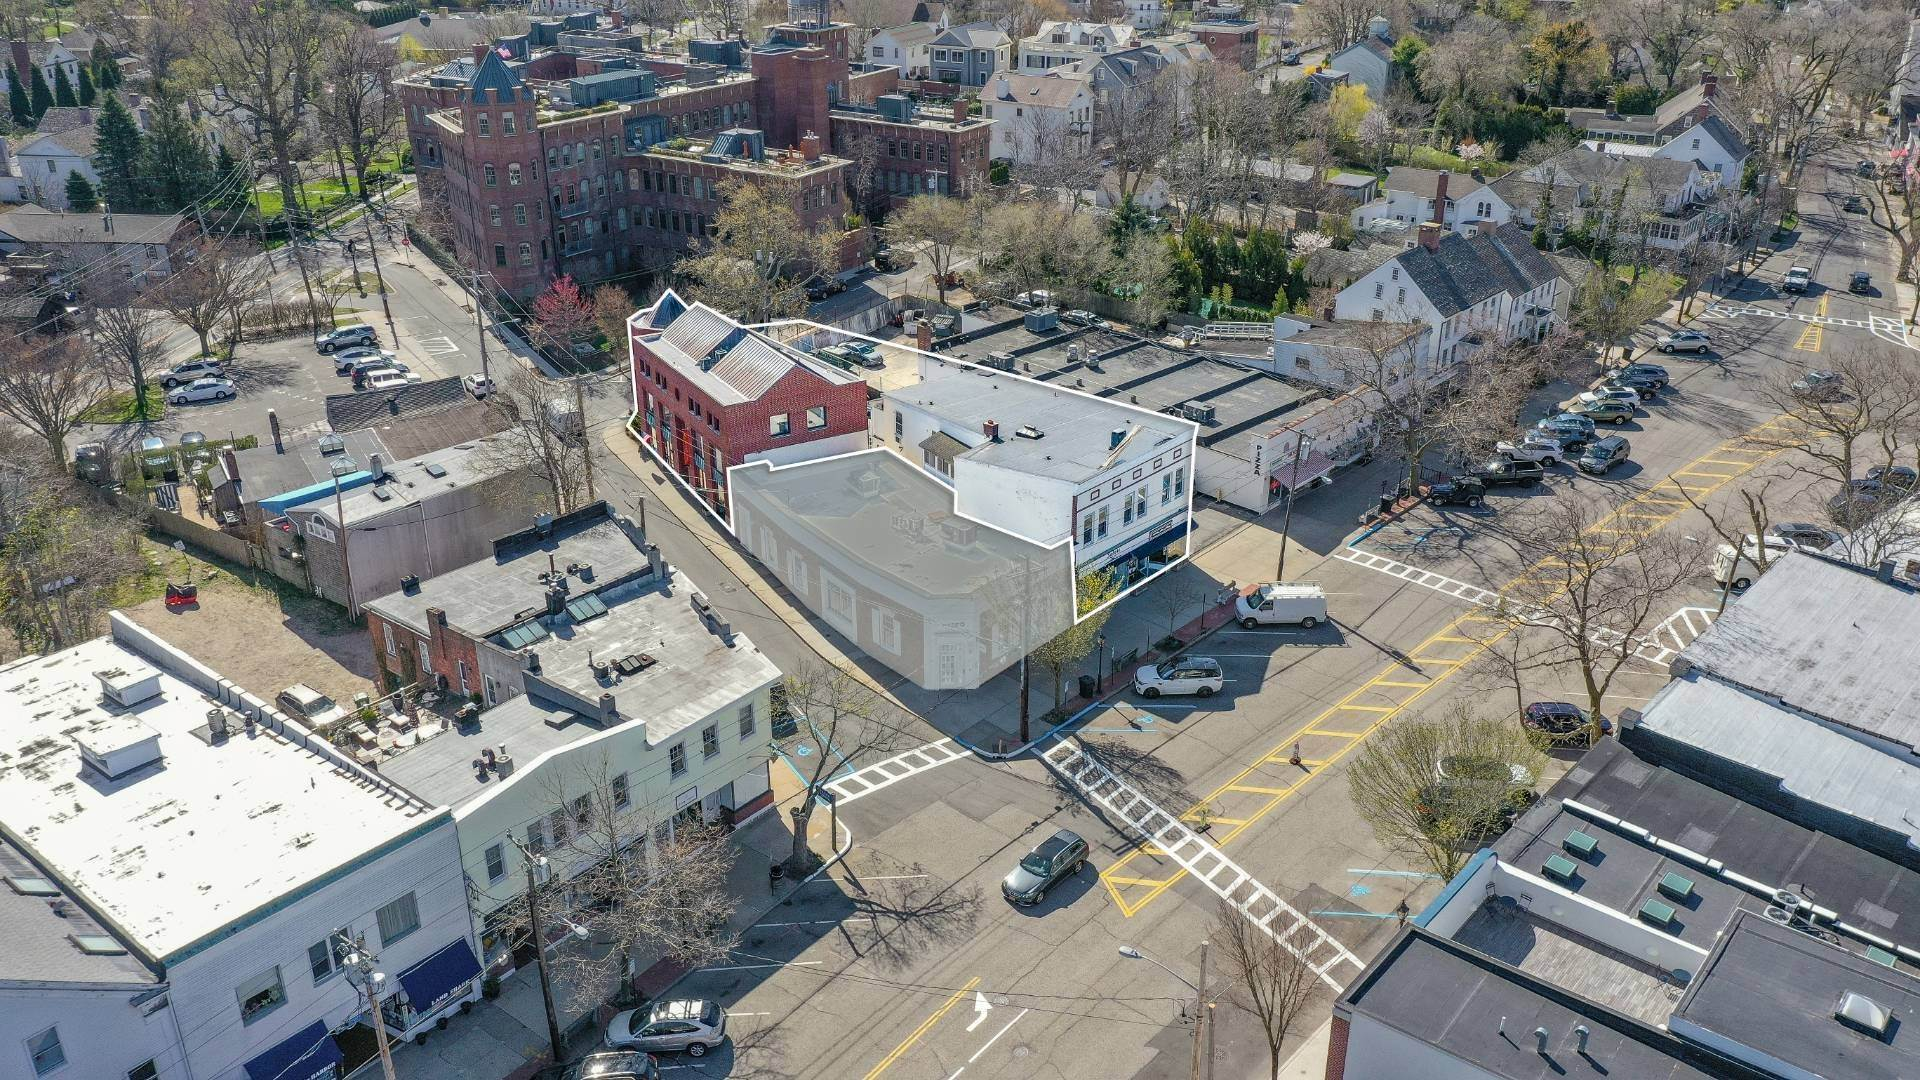 Commercial for Sale at Just Listed! Sag Harbor Main St. Commercial- Mixed Use 95 Main Street Or 75 Washington Street, Sag Harbor, NY 11963